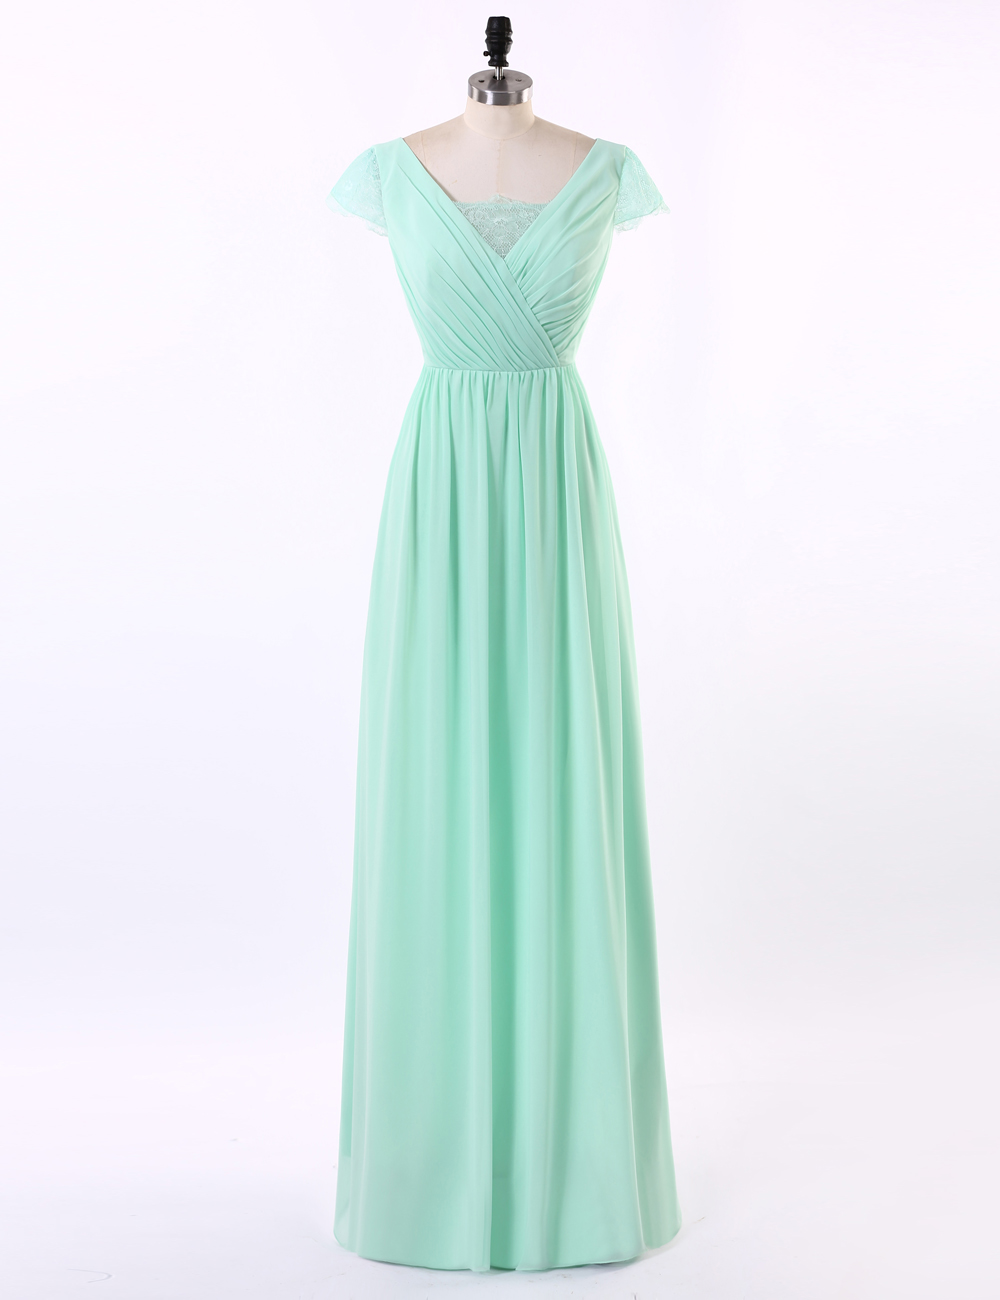 mint green bridesmaid dresses long chiffon bridesmaid dress cheap bridesmaid dresses robe. Black Bedroom Furniture Sets. Home Design Ideas